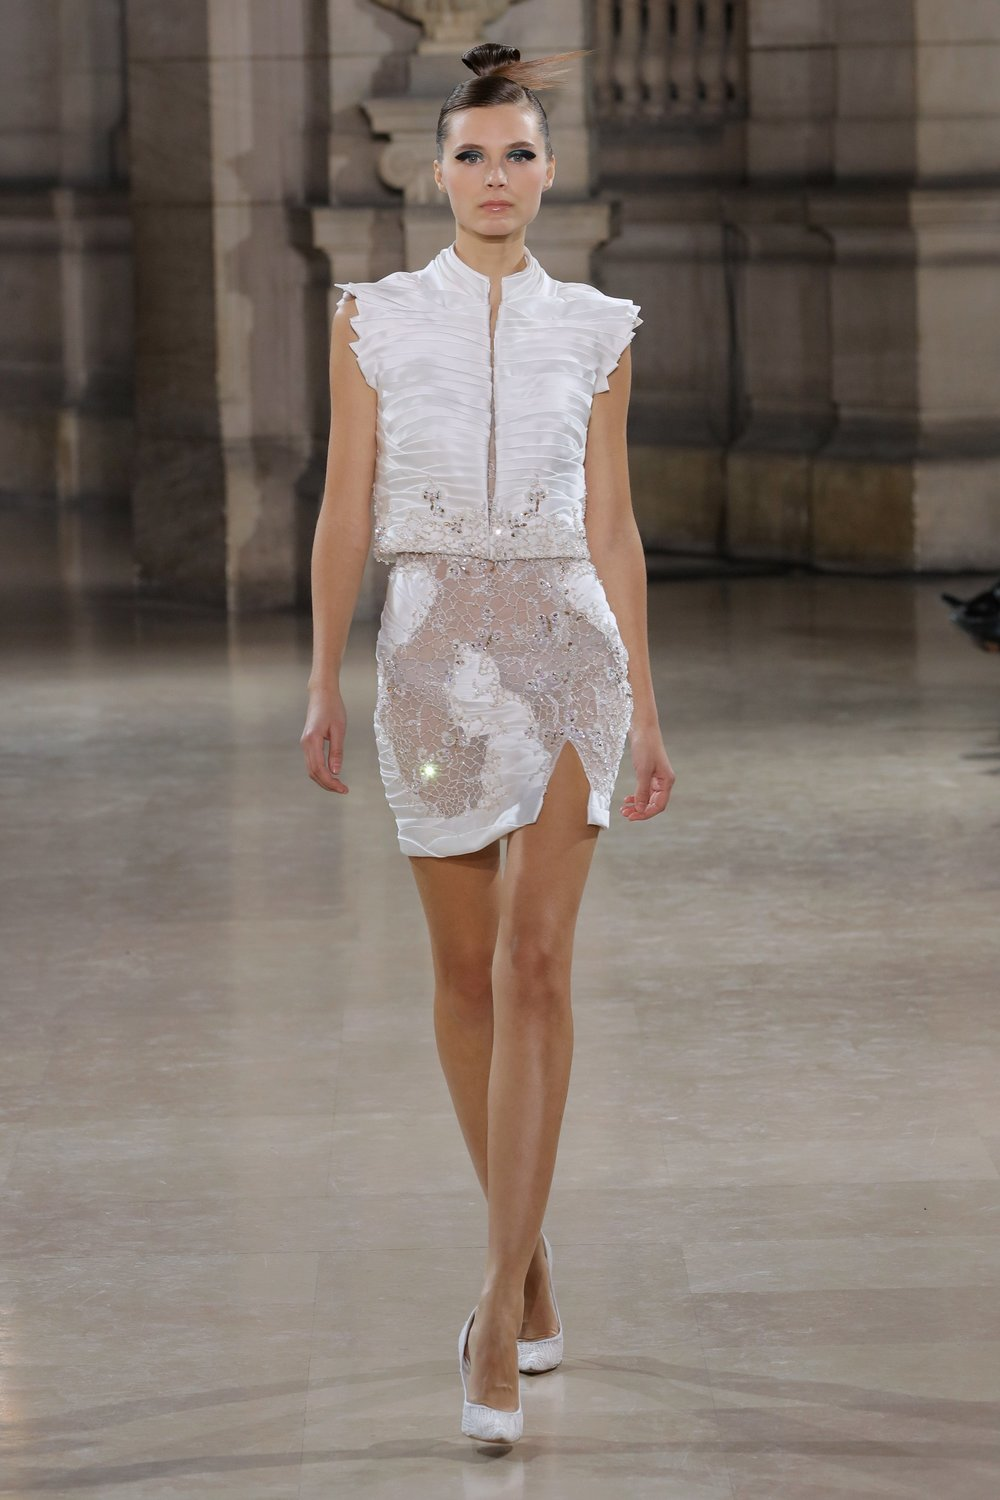 TONY_WARD_COUTURE_SS19_16.jpg